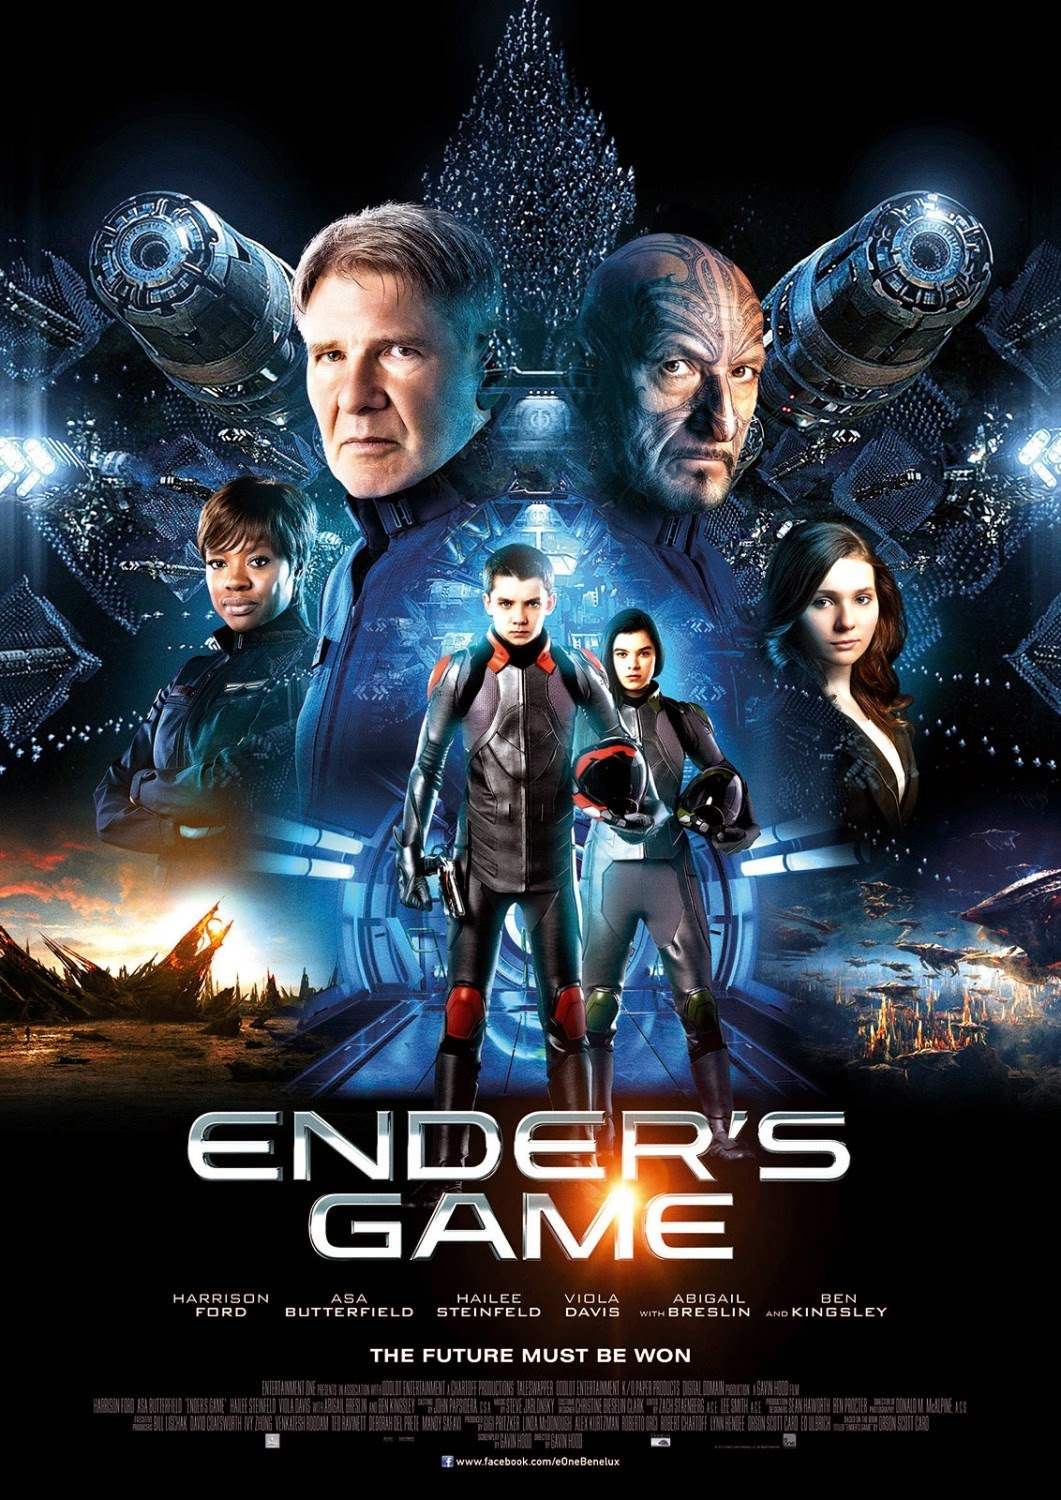 http://syedzonlinedrama.blogspot.com/2014/07/enders-game-2013-hindi-dubbed-movie.html